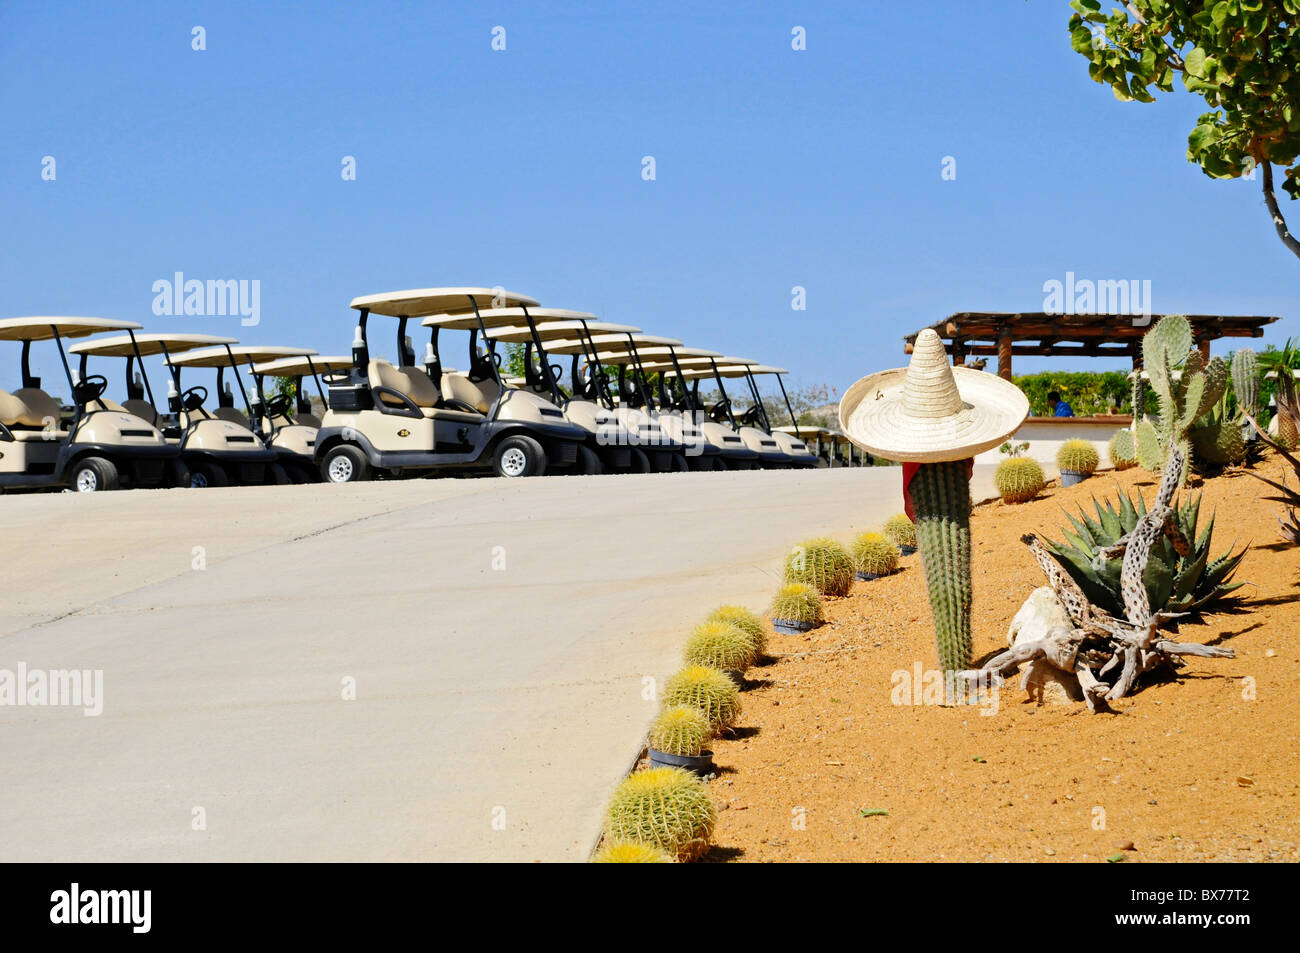 Golf carts and cactus near club house at Puerto Los Cabos Golf Club in San Jose del Cabo, Mexico - Stock Image